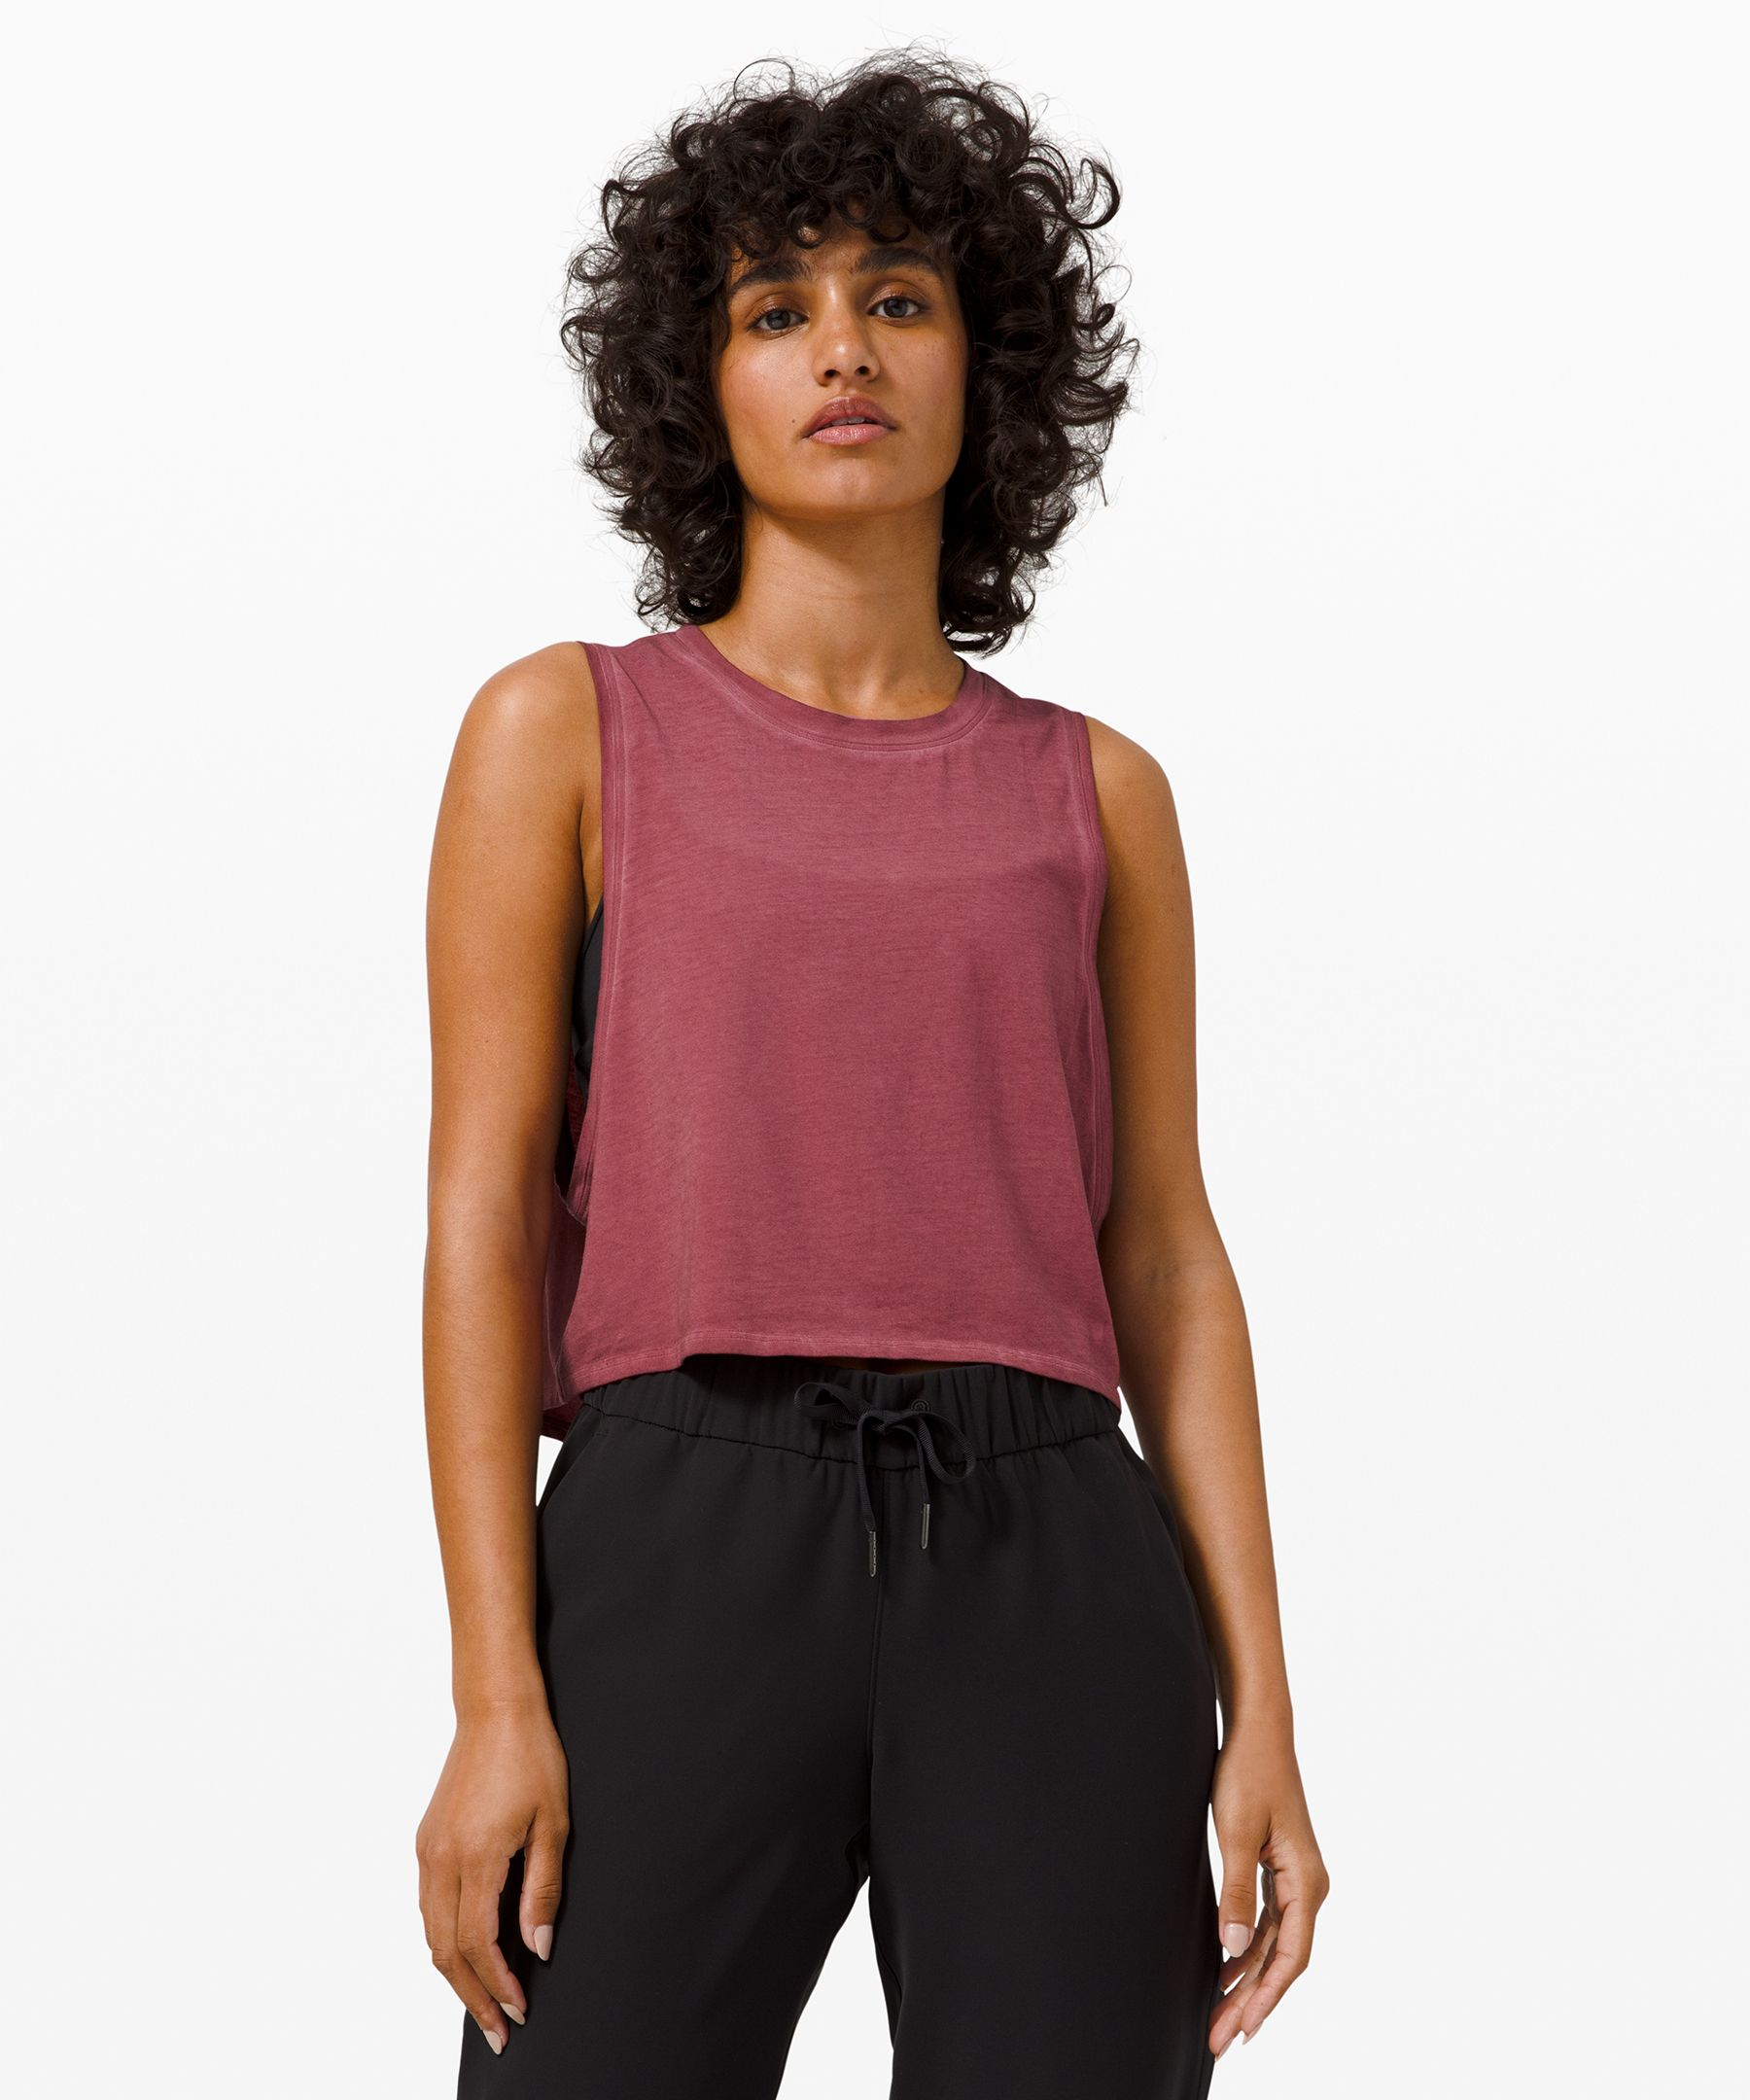 Stay cool on warm days in this  soft, breathable Pima Cotton  tank that features low  armholes and a back keyhole  for extra airflow.